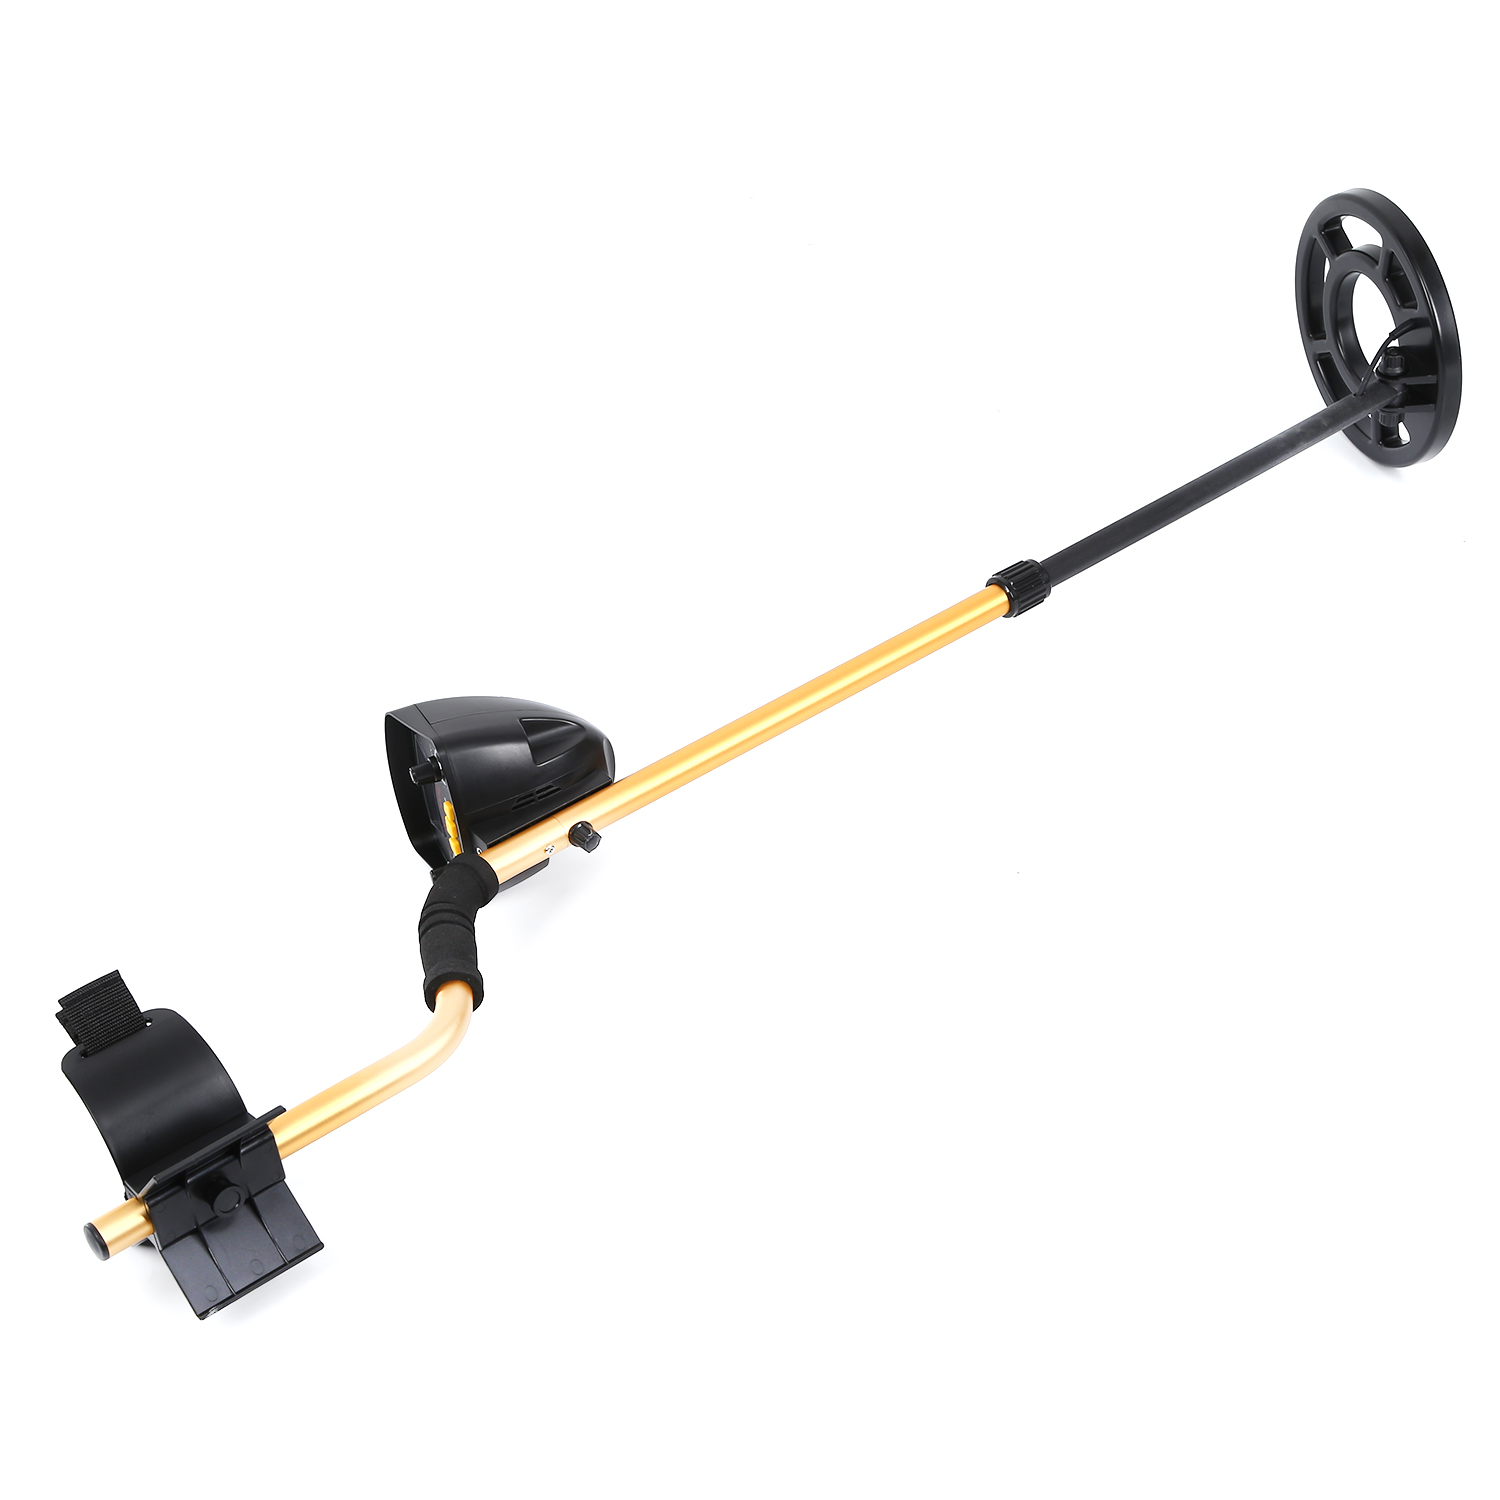 New Professional Underground Metal Detector MD3009II Gold Ground Metal Detector MD 3009ii Nugget High Sensitivity Silver